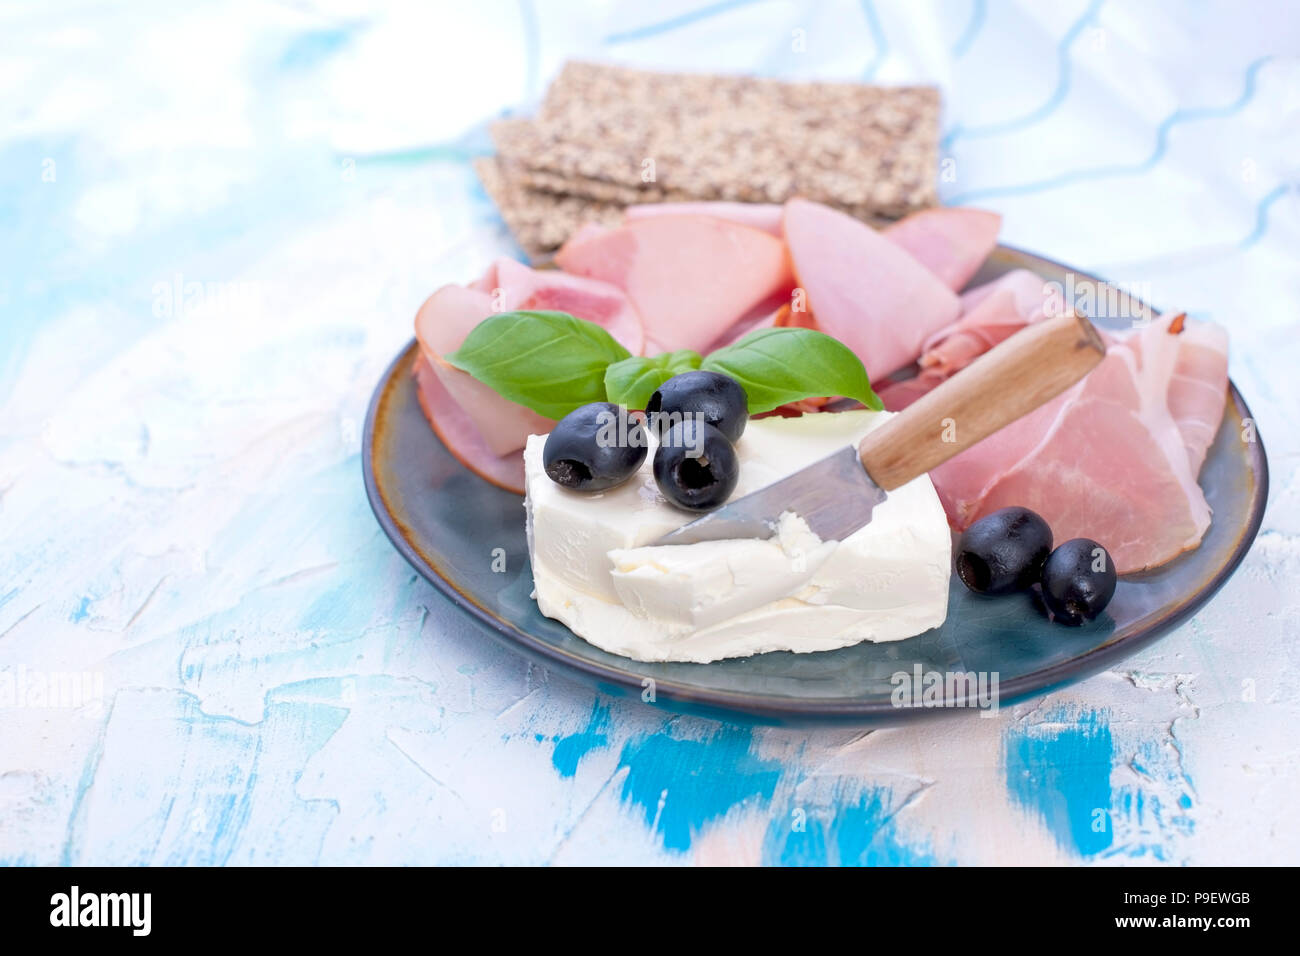 Cheese and ham with olives on a gray plate. White background with blue divorces. Knife for cheese. Dry Breadstones. Free space for text or a postcard - Stock Image